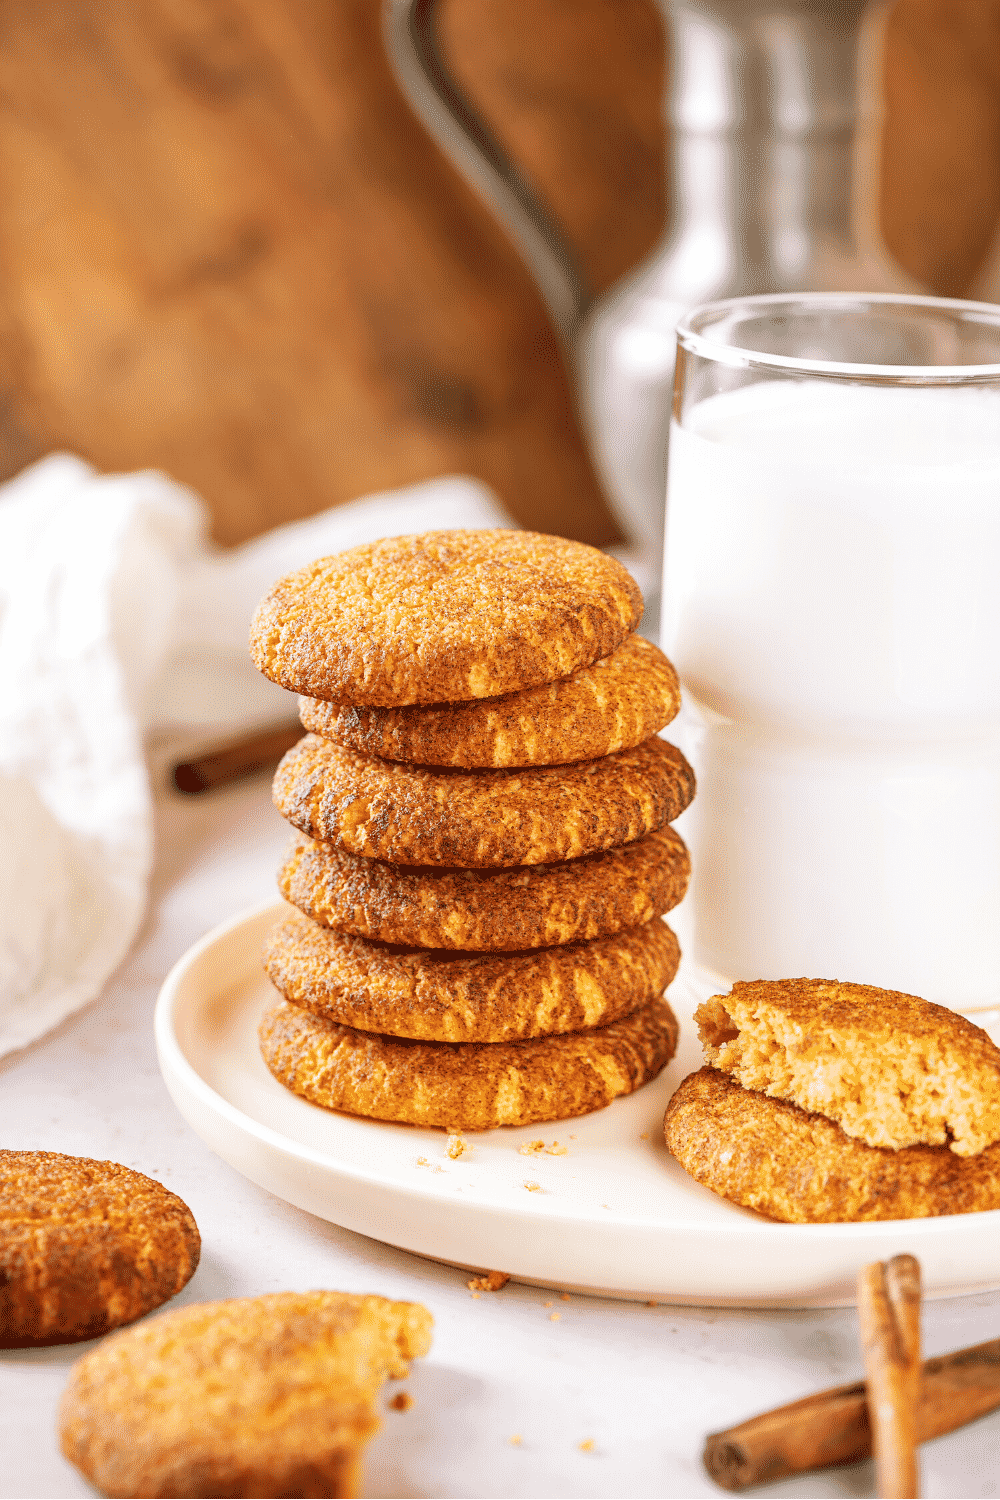 A stack of six snickerdoodle cookies on a white plate. There is a whole snickerdoodle cookie and half of one on top of it to the right of the stack. Behind that is a glass of milk.